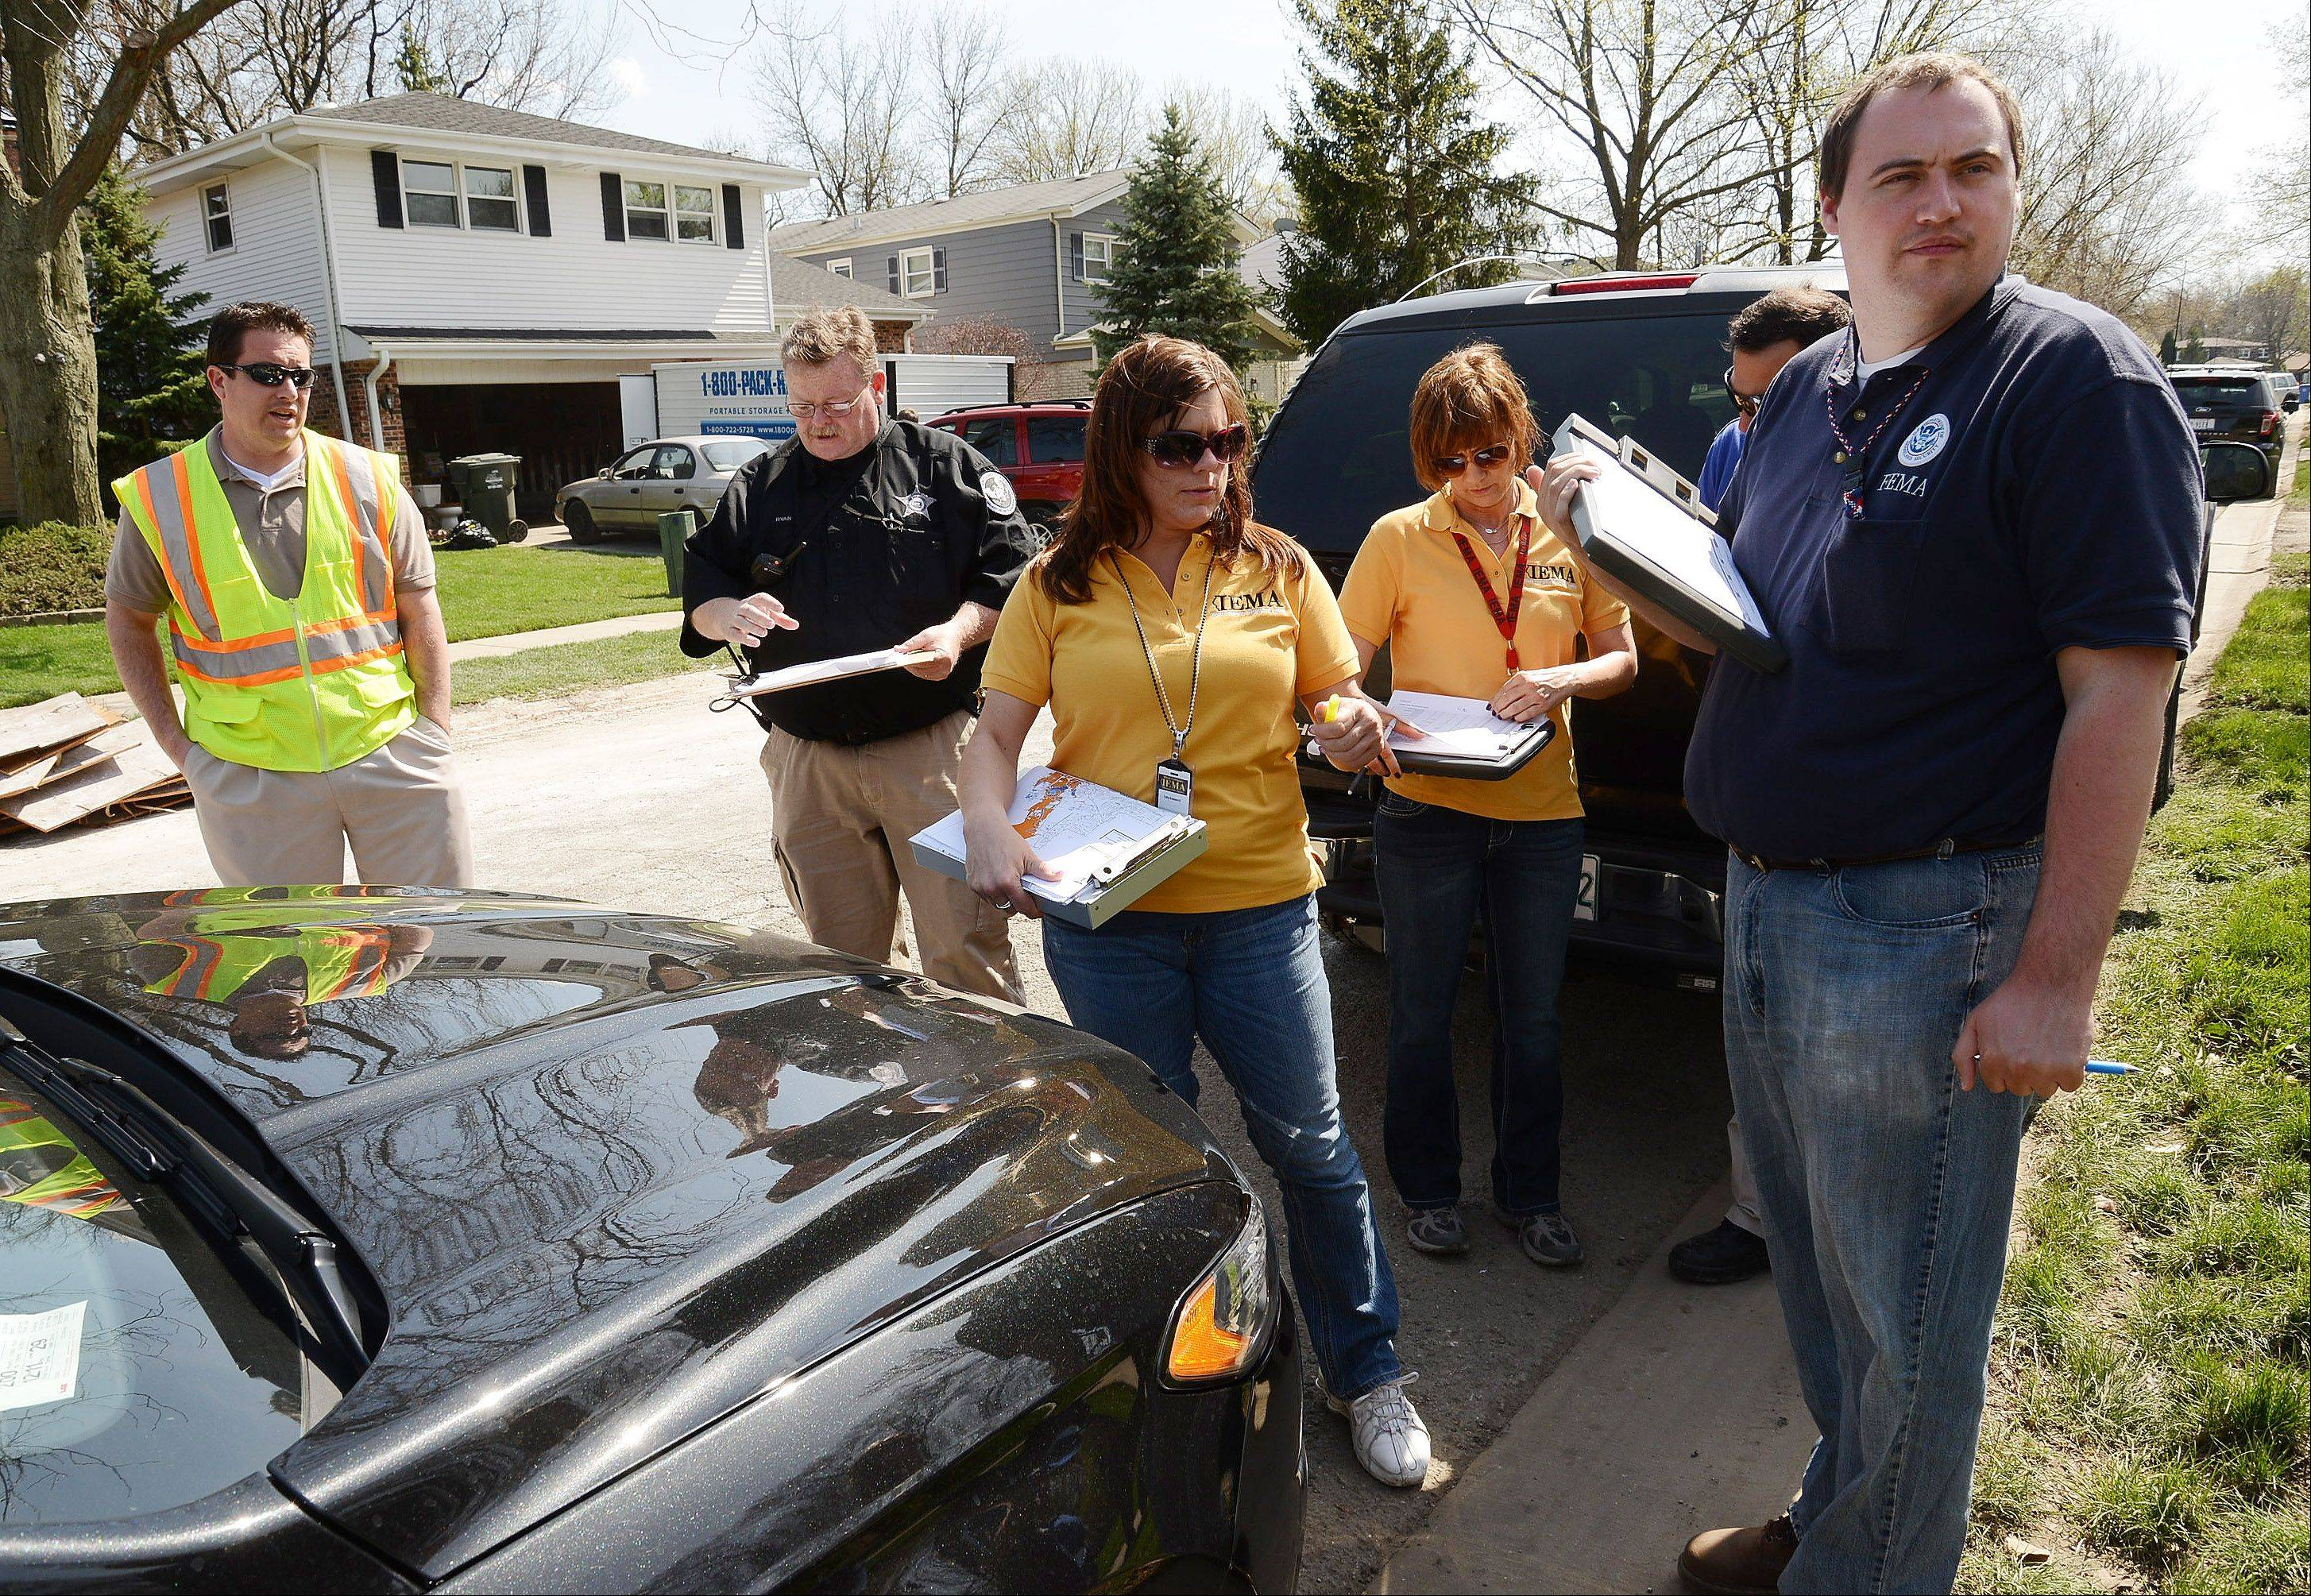 FEMA workers toured Big Bend Drive and other areas of Des Plaines on Tuesday to assess the damage from recent flooding. Their findings will help determine whether the city is declared a disaster area, making residents eligible for federal assistance.